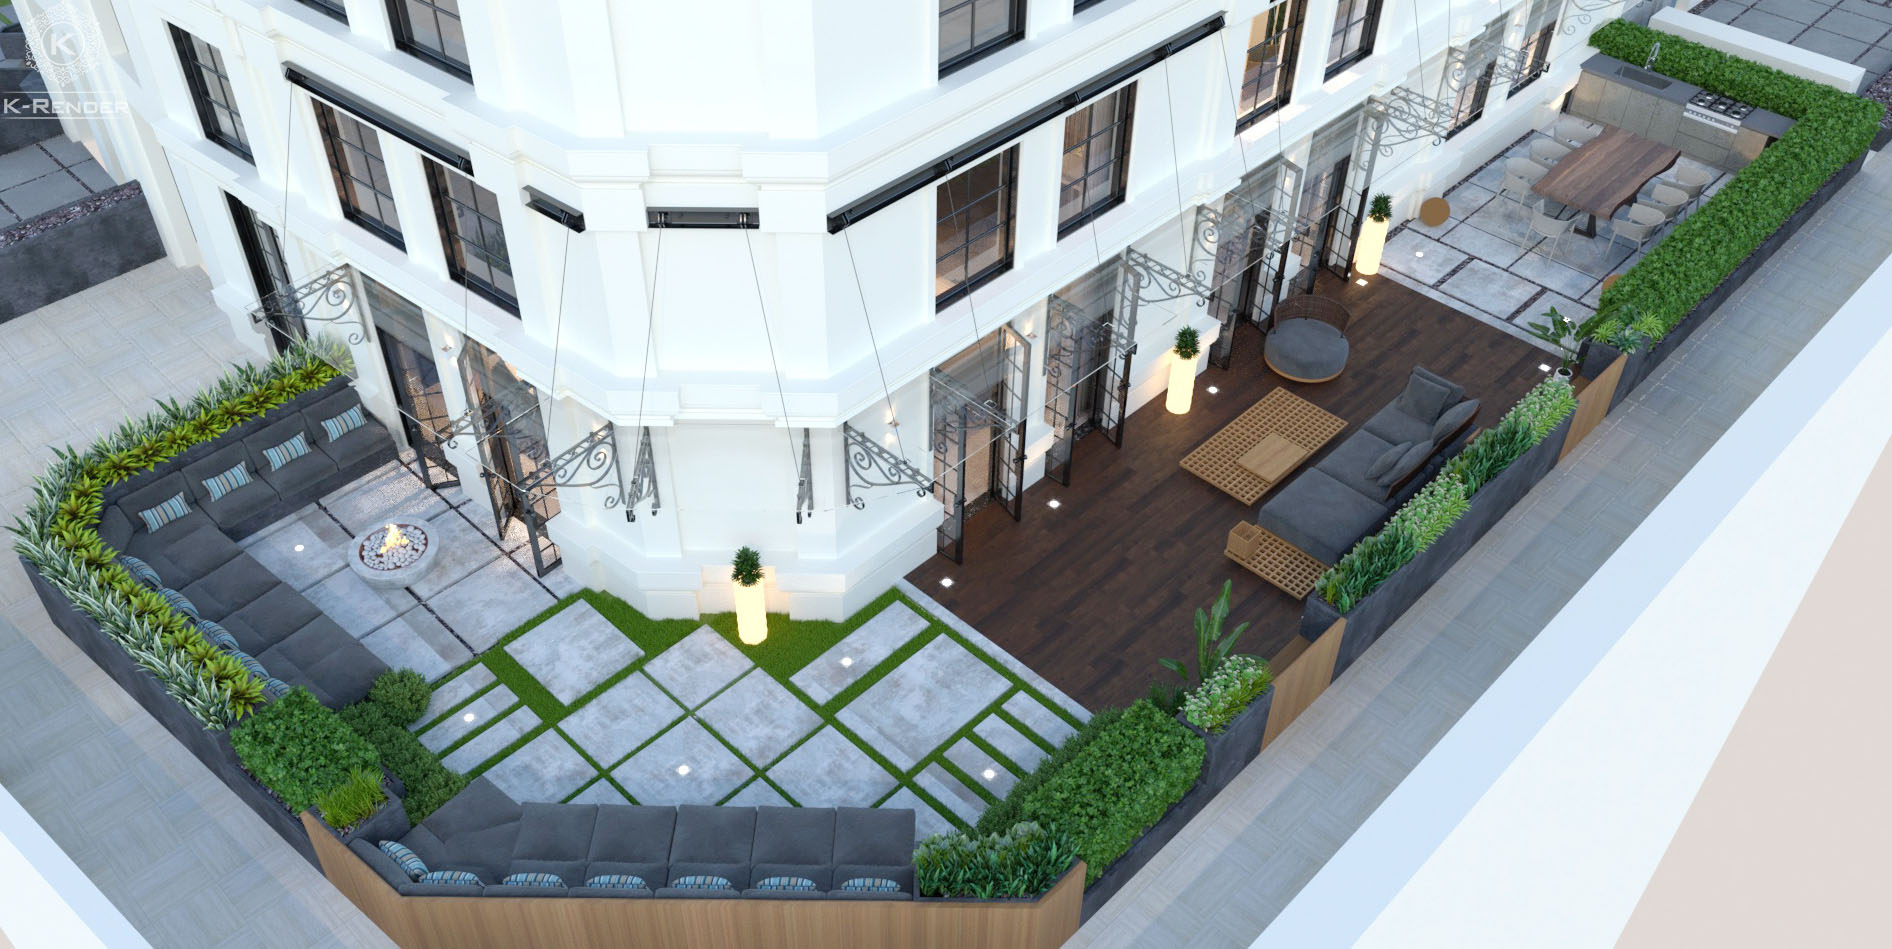 External-3D-visualization-the-first-type-of-architectural-visualization-services